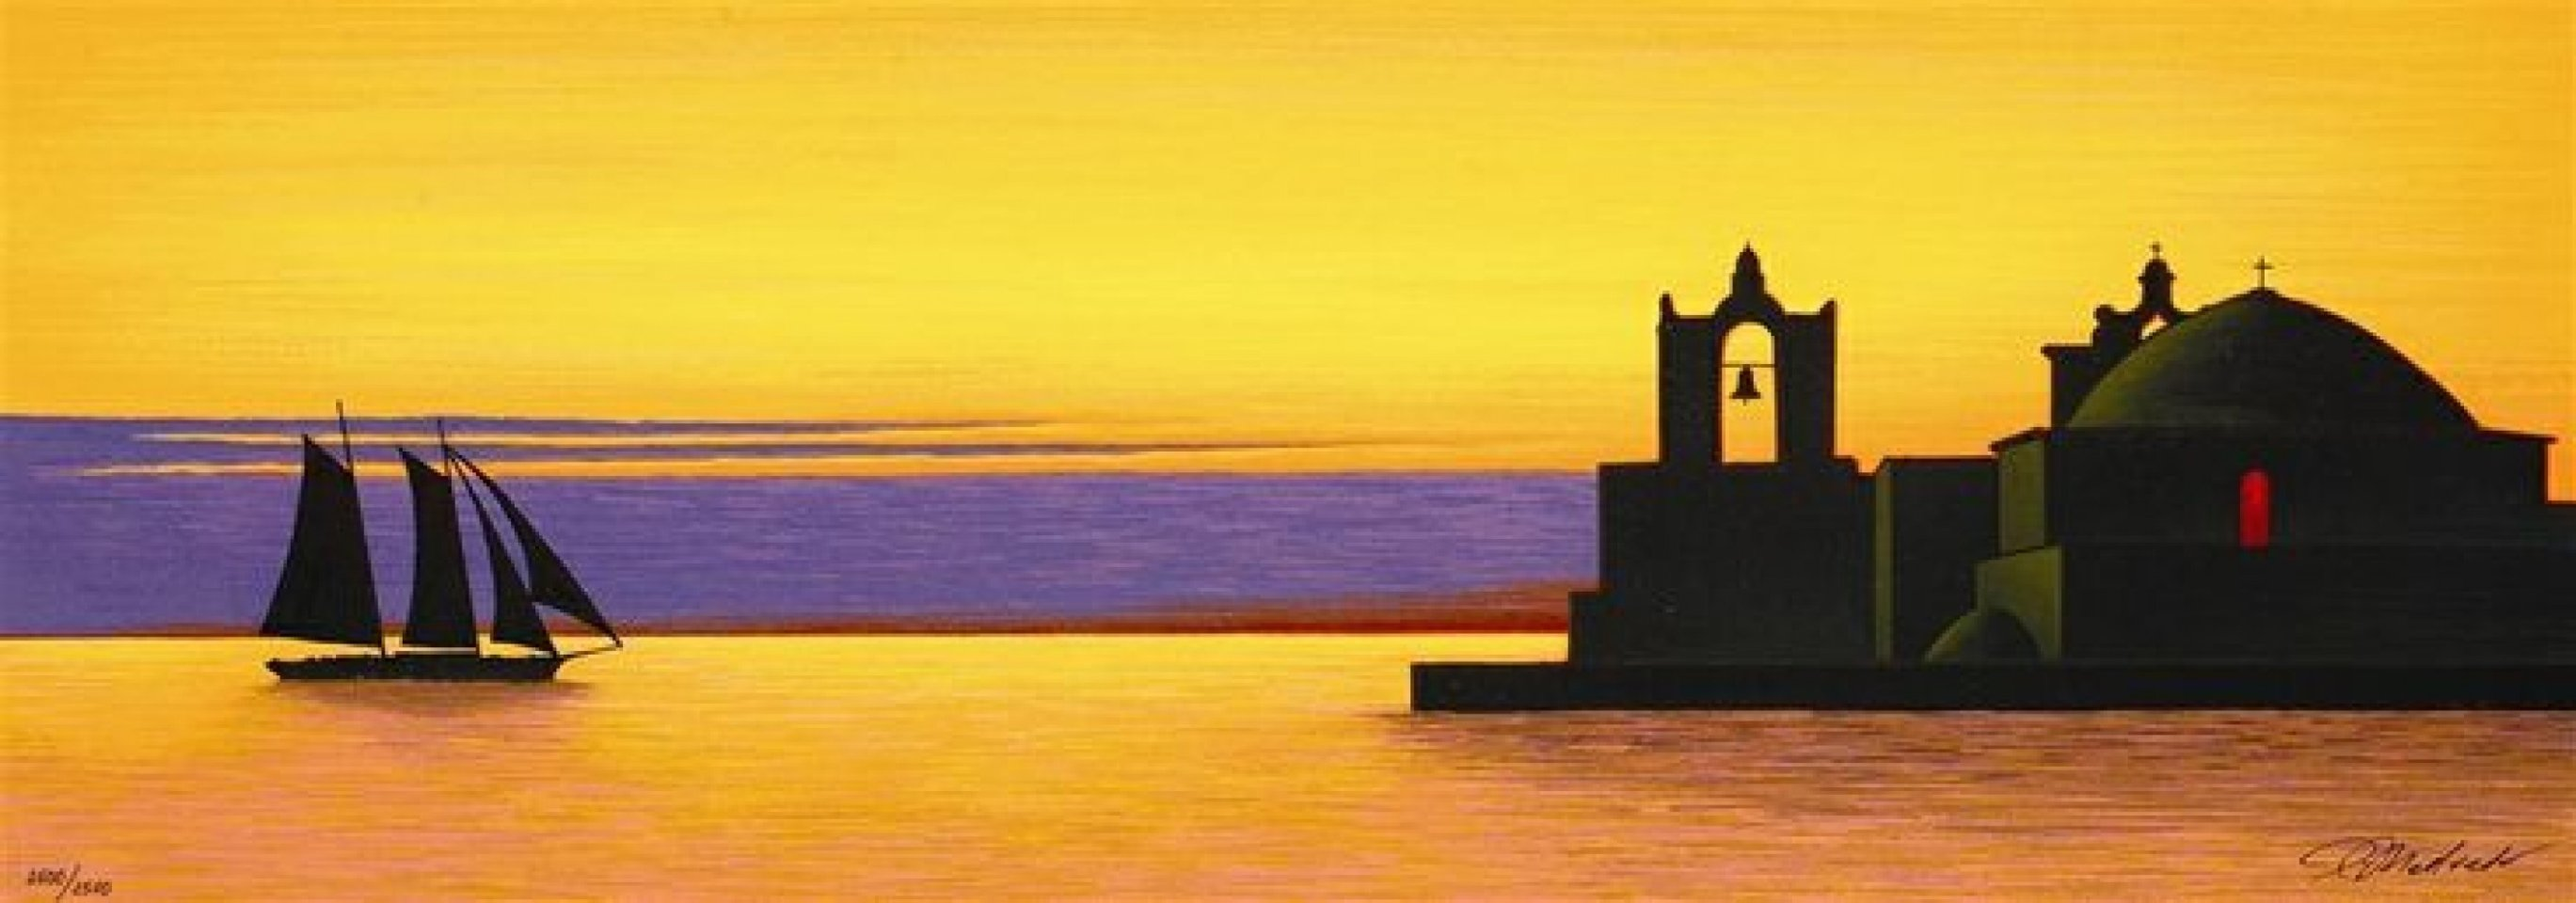 Golden Arrival 2006 Limited Edition Print by Igor Medvedev